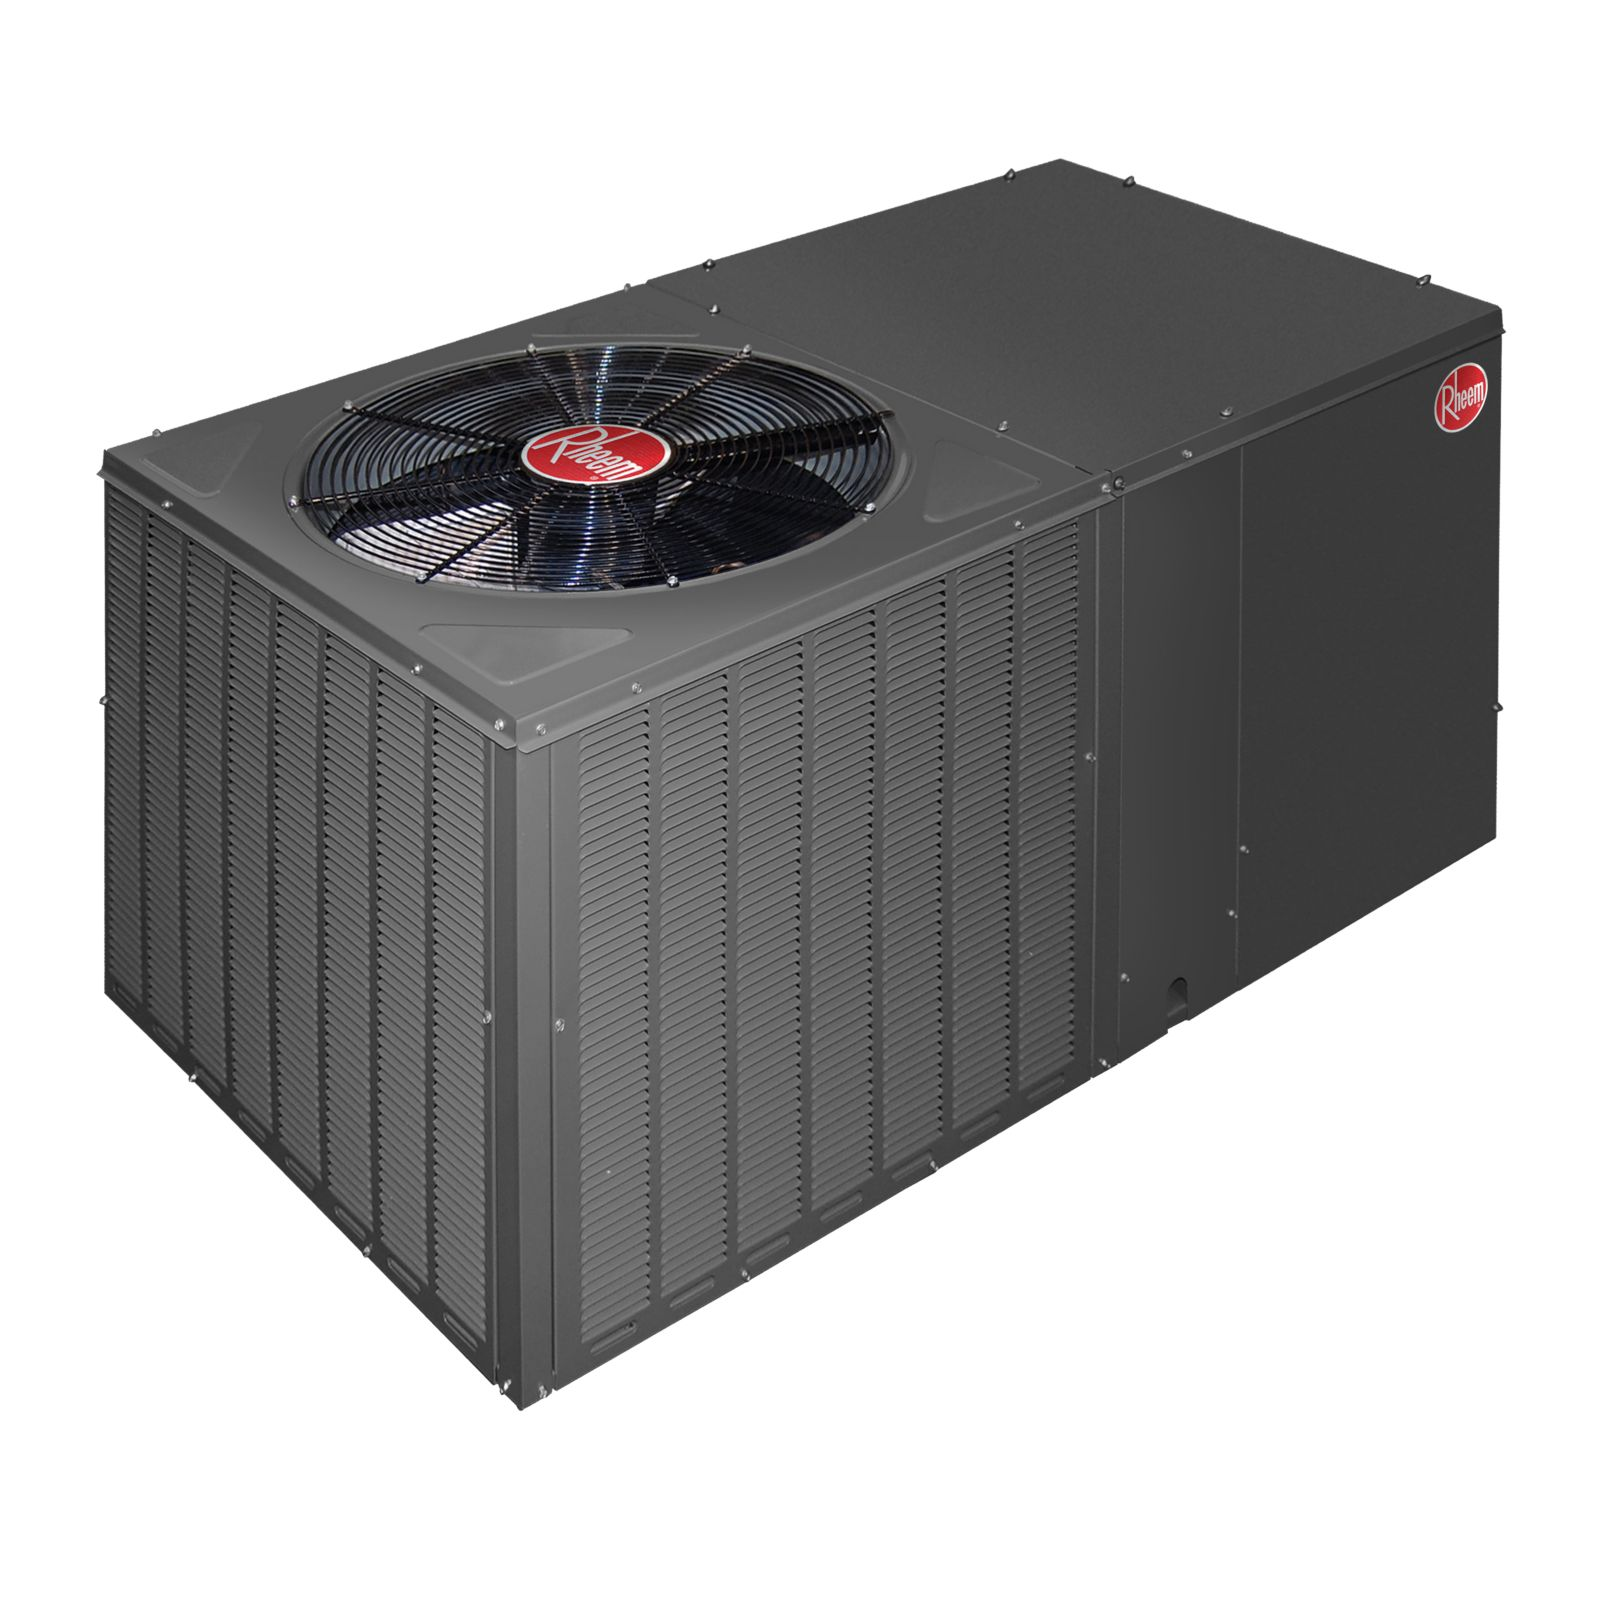 Rheem RQPM-A037JK000AUA - Classic 3 Ton 14 SEER, R-410A, Packaged Heat Pump With Horizontal Discharge, 208-230V, 1 Phase